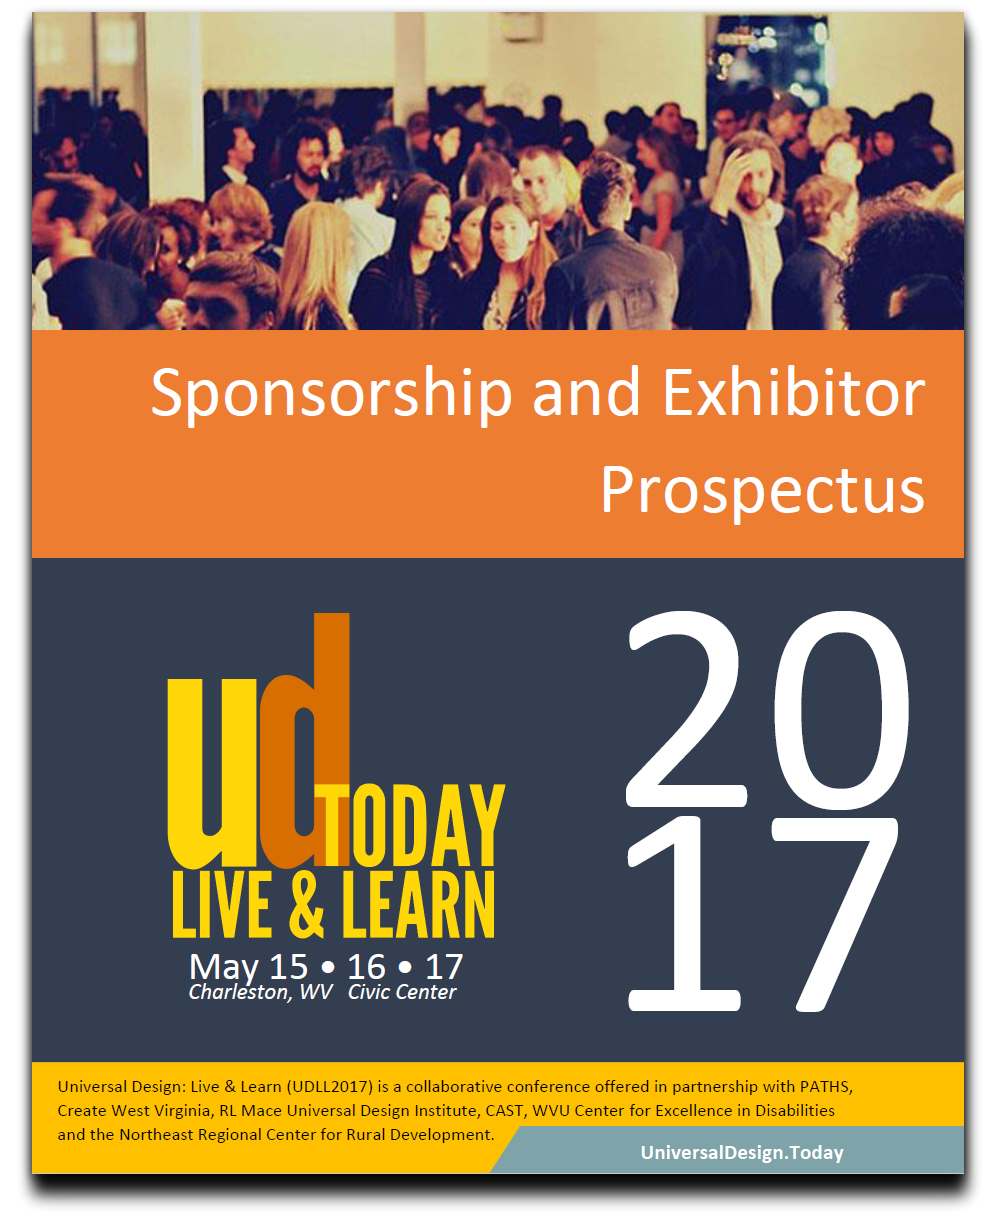 Clickable image of the cover of the UDLL sponsorship and exhibitor prospectus